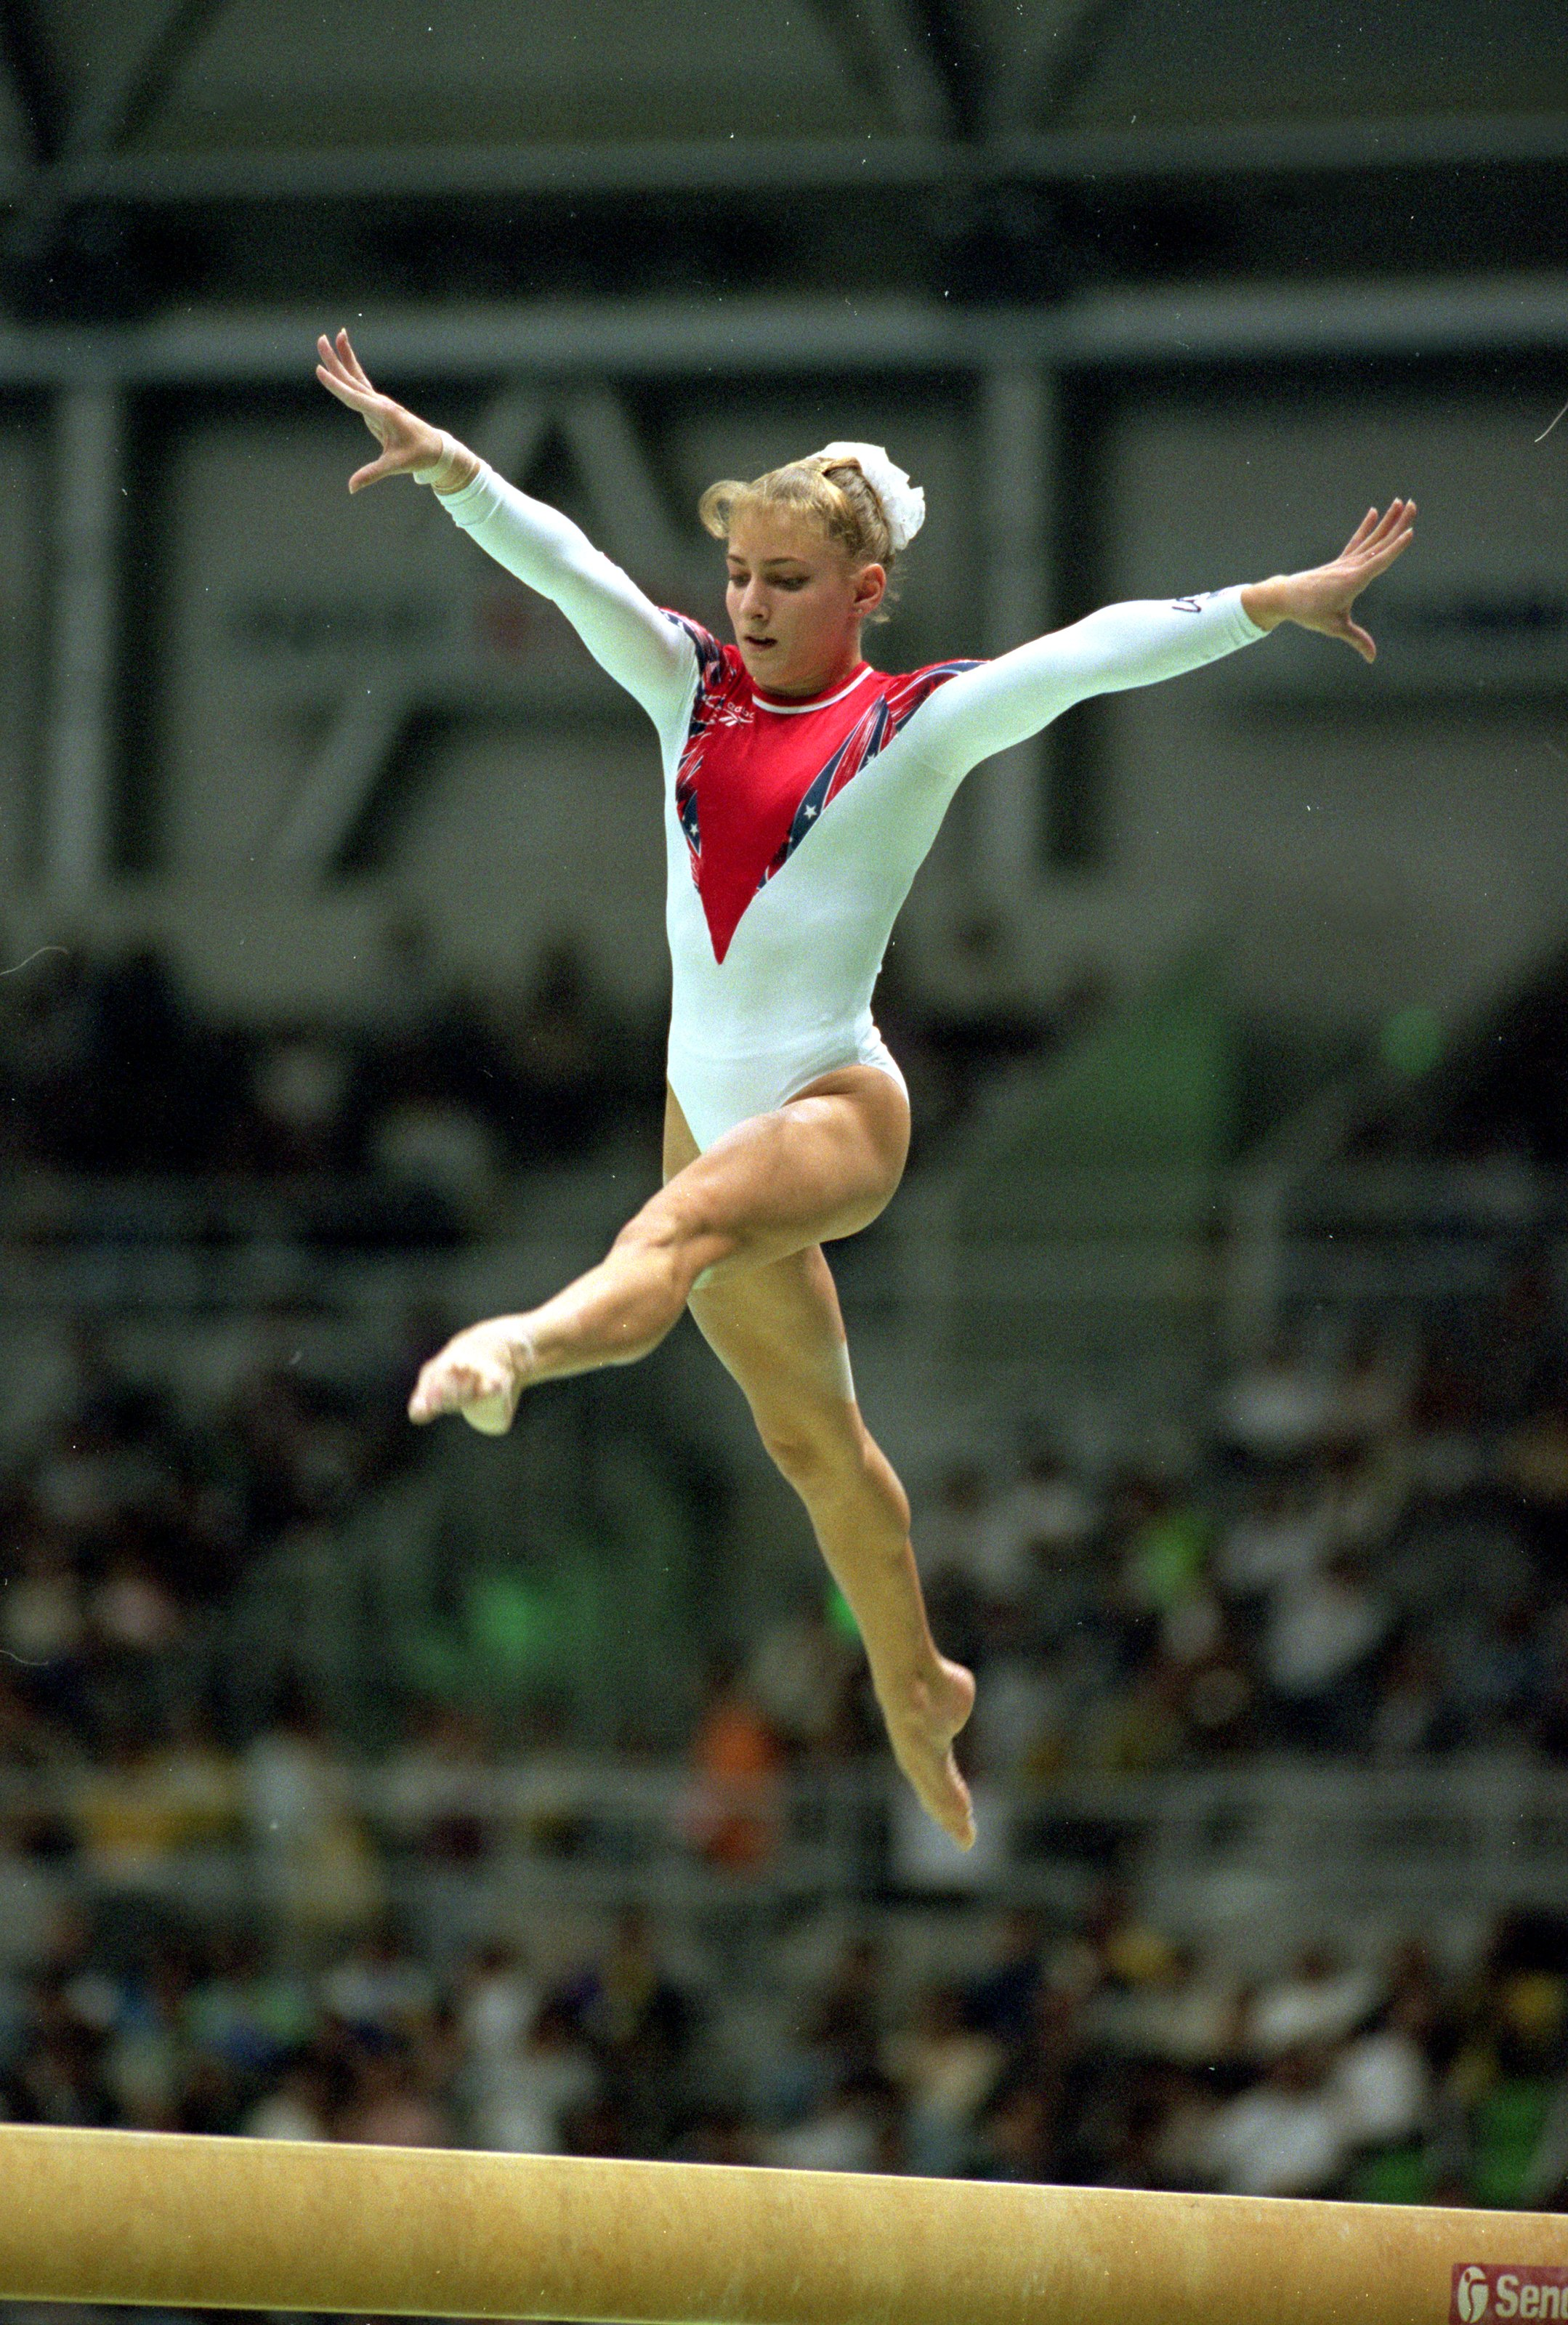 7 Oct 1995: Shannon Miller #222 of the USA jumps on the balance beam during the World Gymnastics Championships in Sabae, Japan. Mandatory Credit: Mike Powell  /Allsport